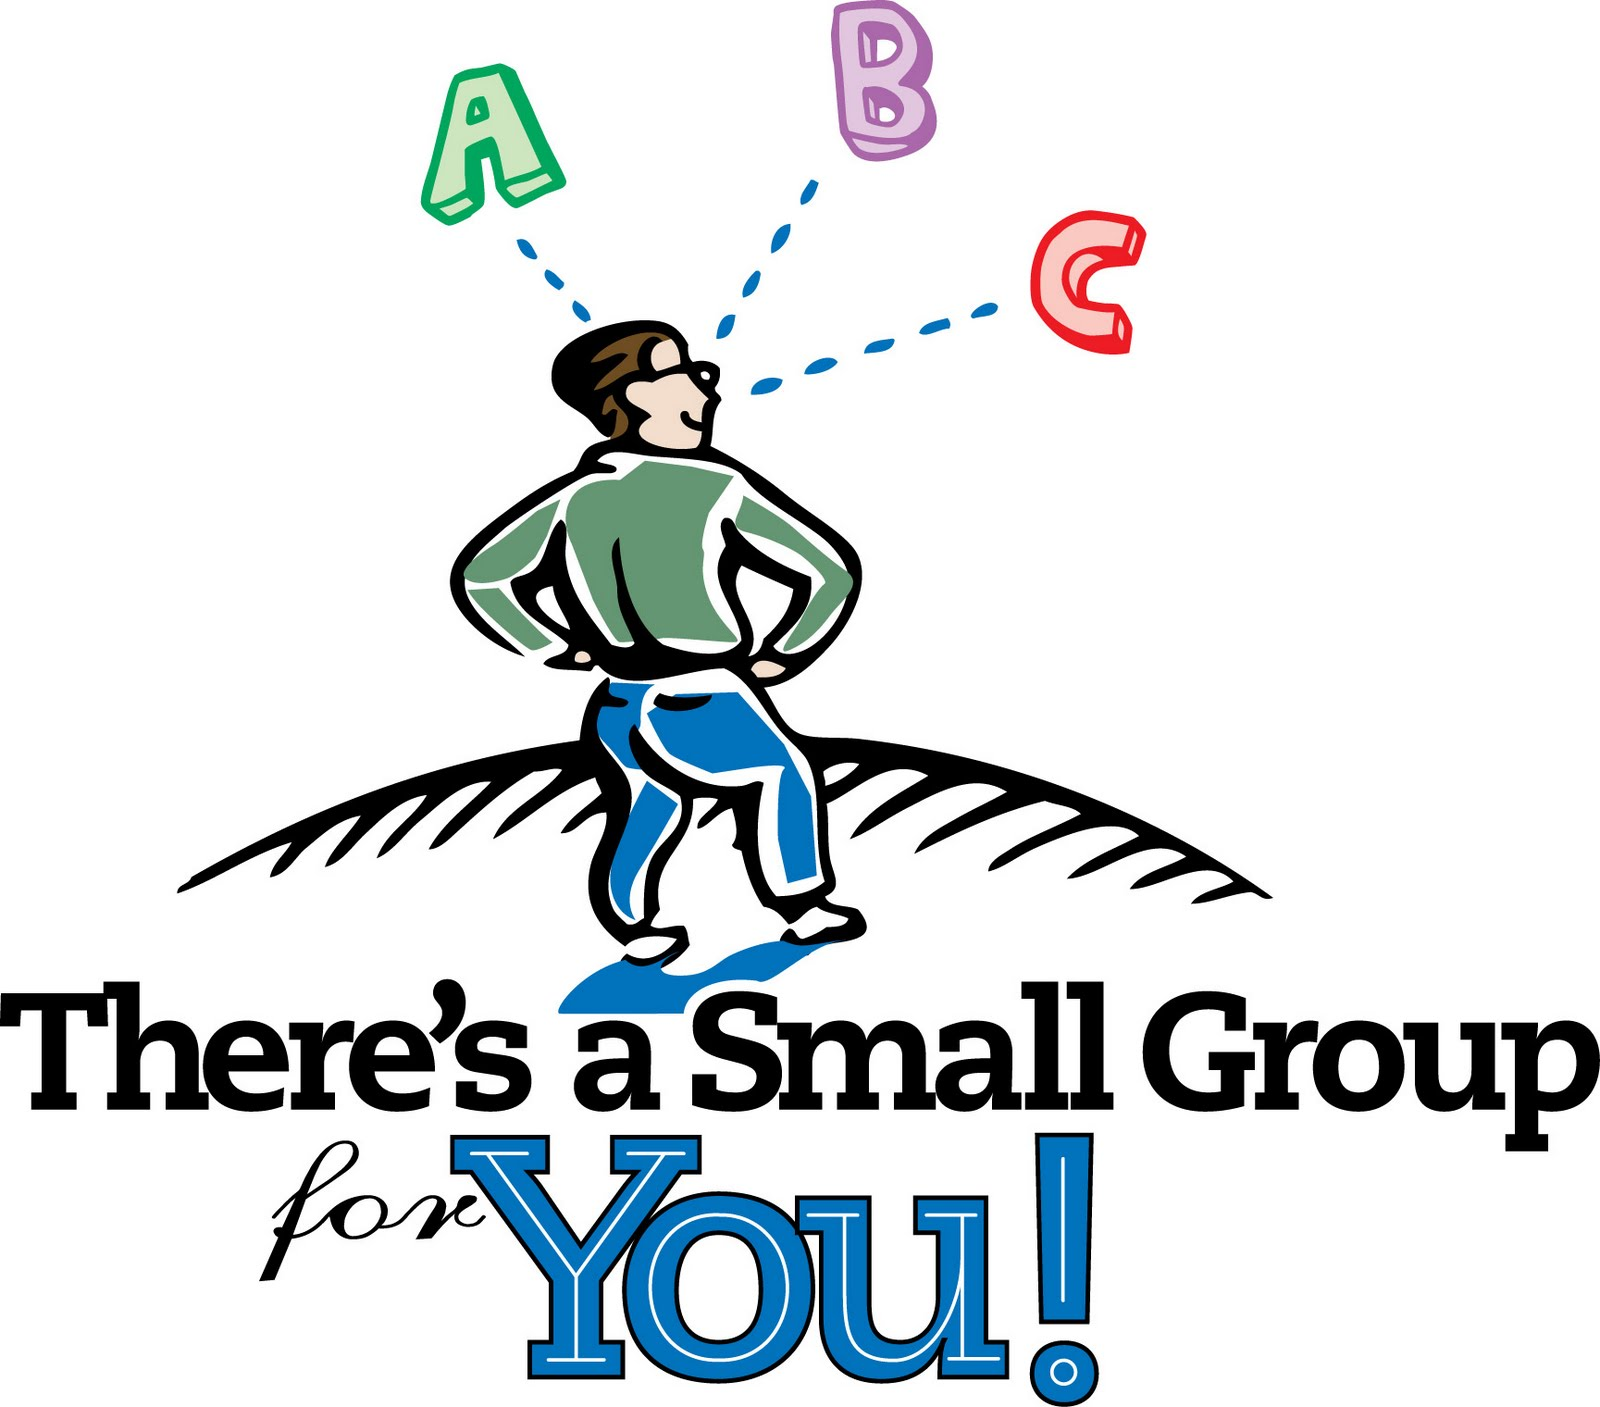 Small Groups Sunday School Women S Ministry Youth News Clipart   Free